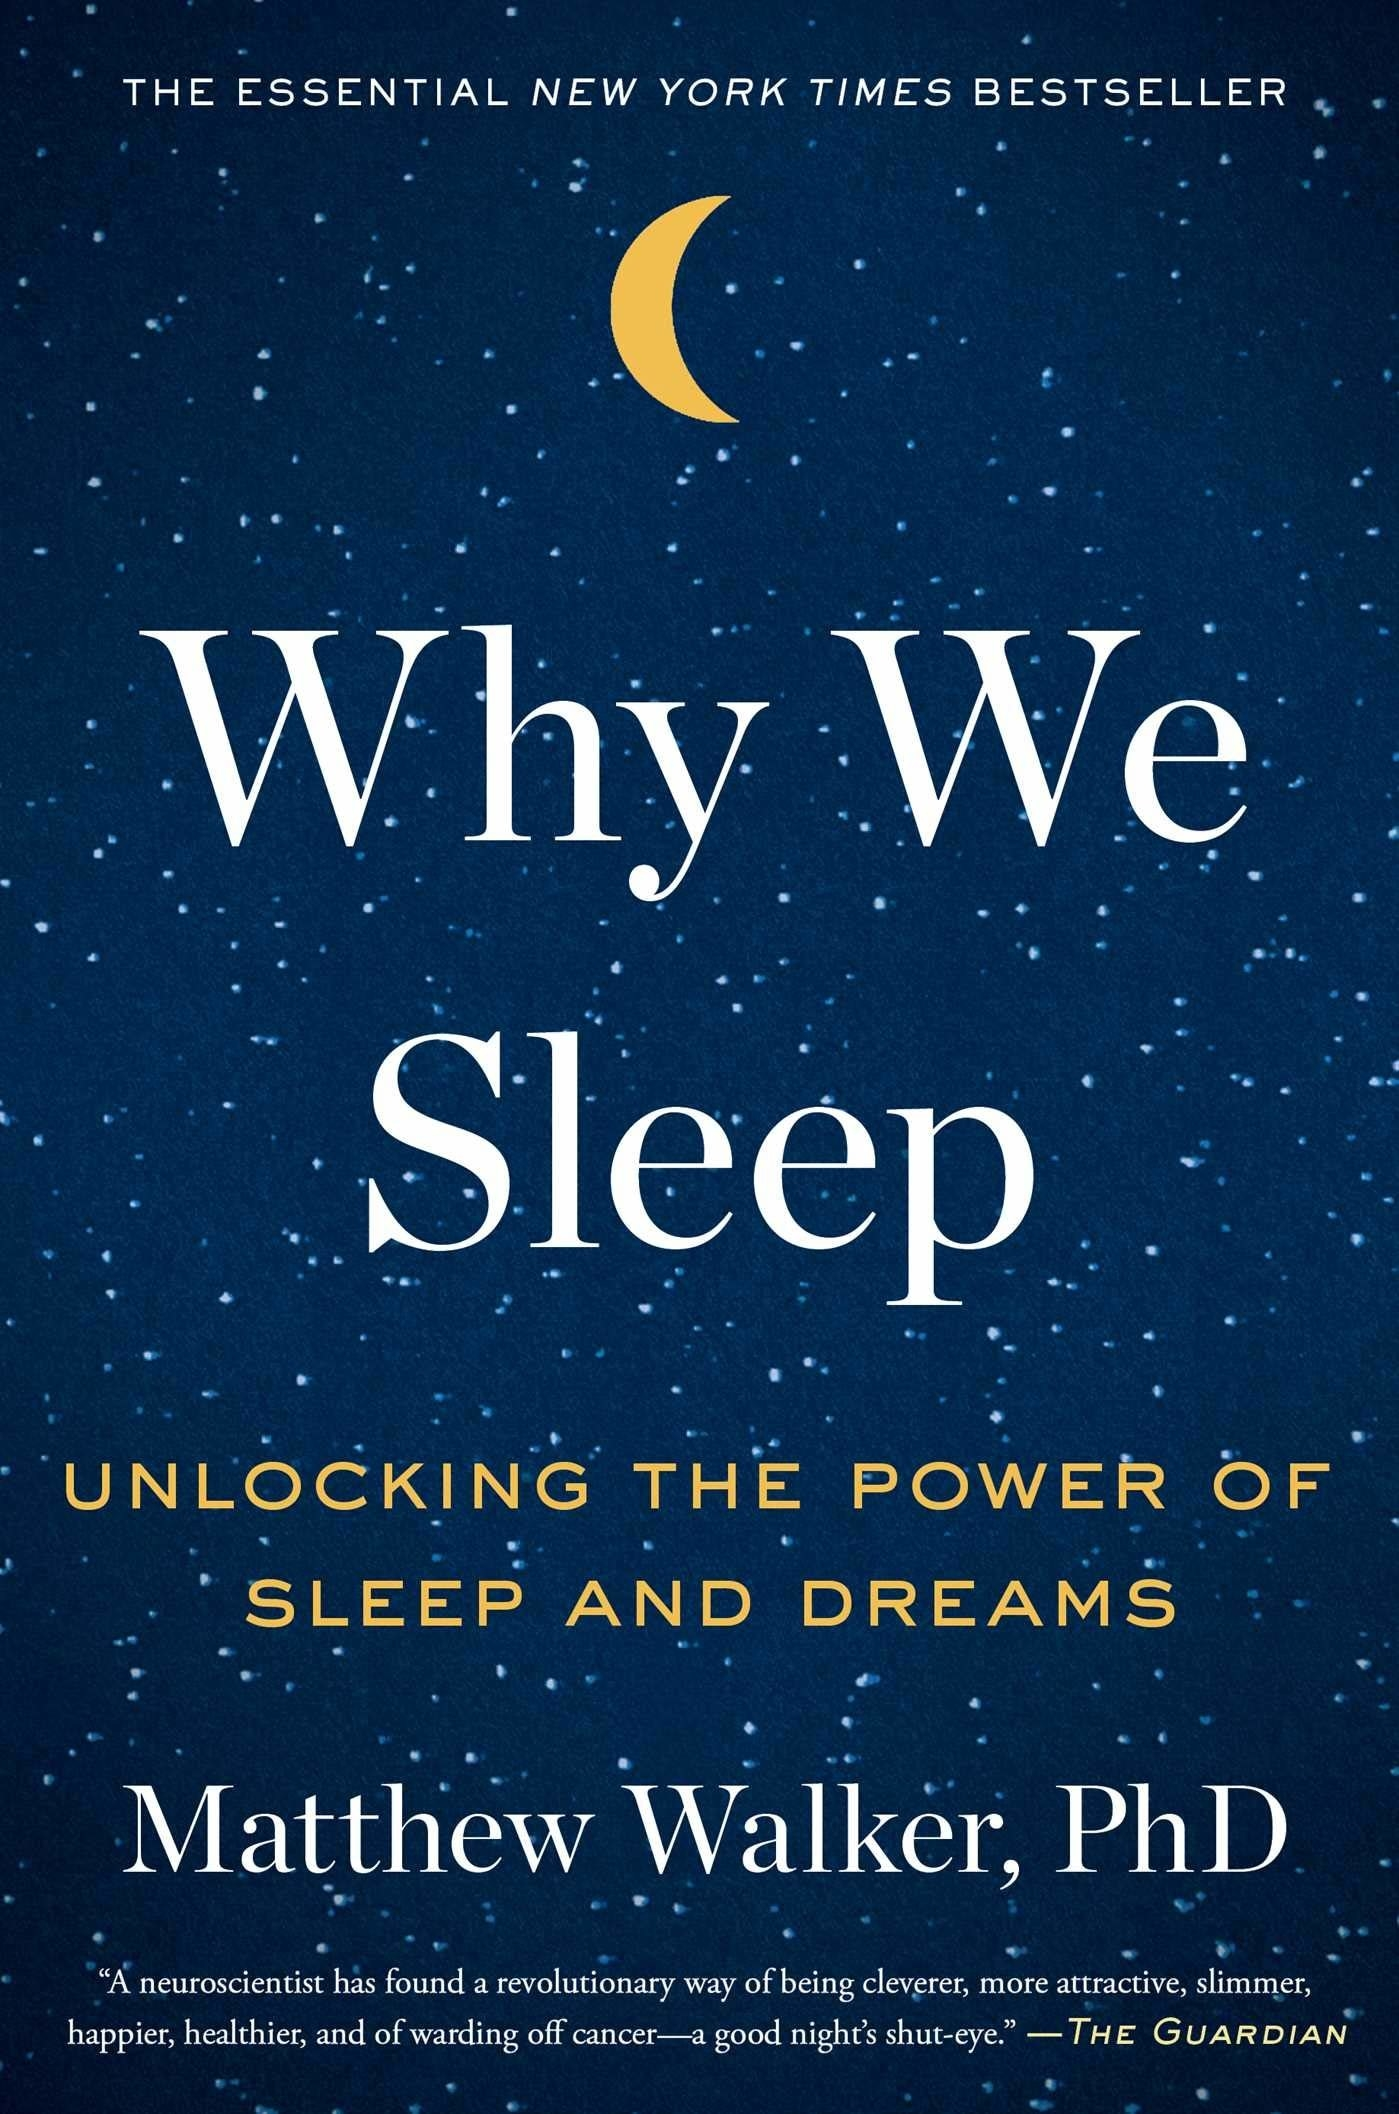 The cover of Why We Sleep that says unlocking the power of sleep and dreams on a background of a starry sky